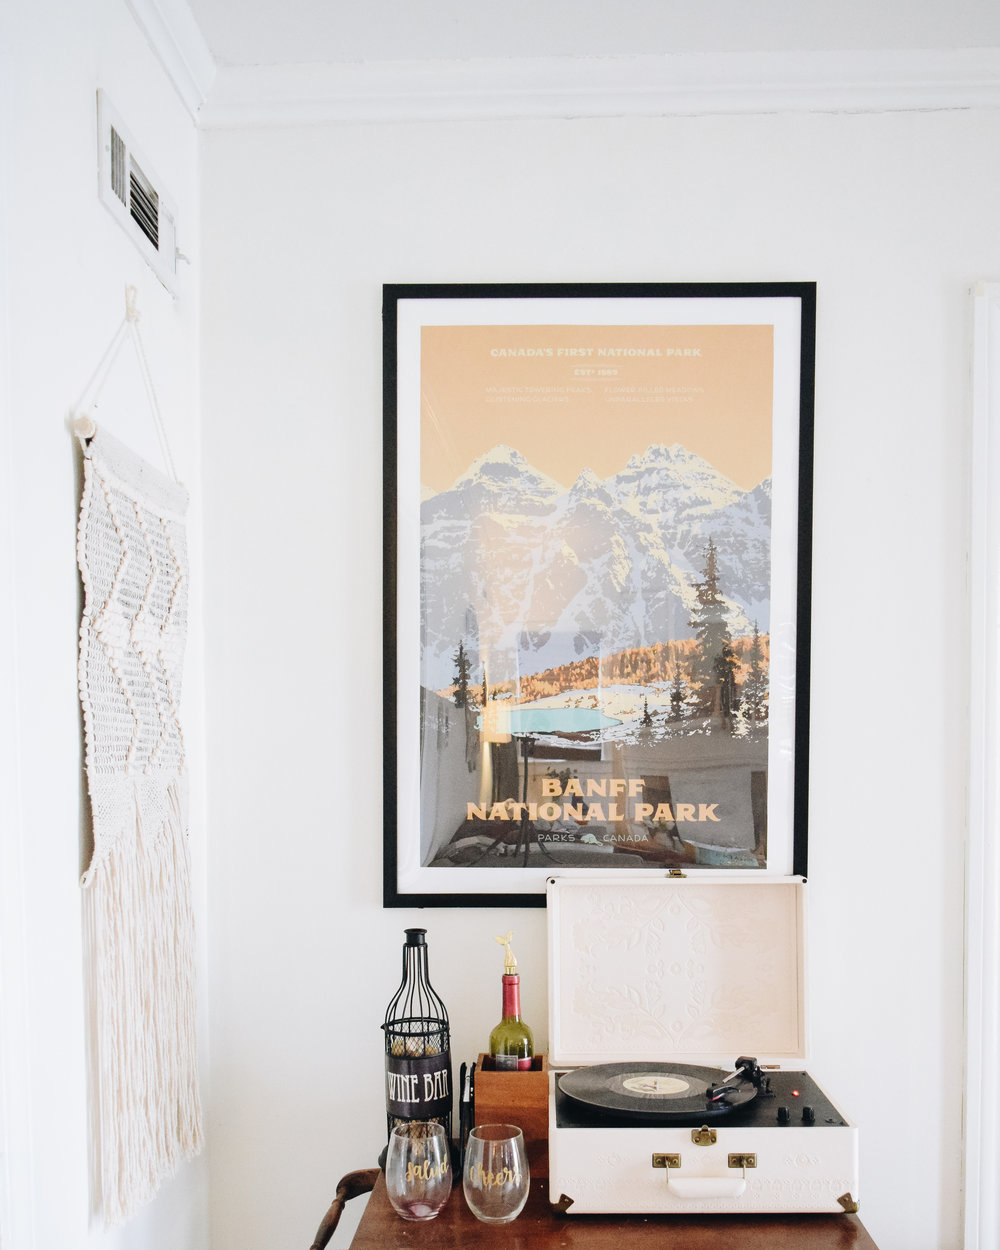 Isn't this Banff Poster perfect?! I love vintage style travel prints.